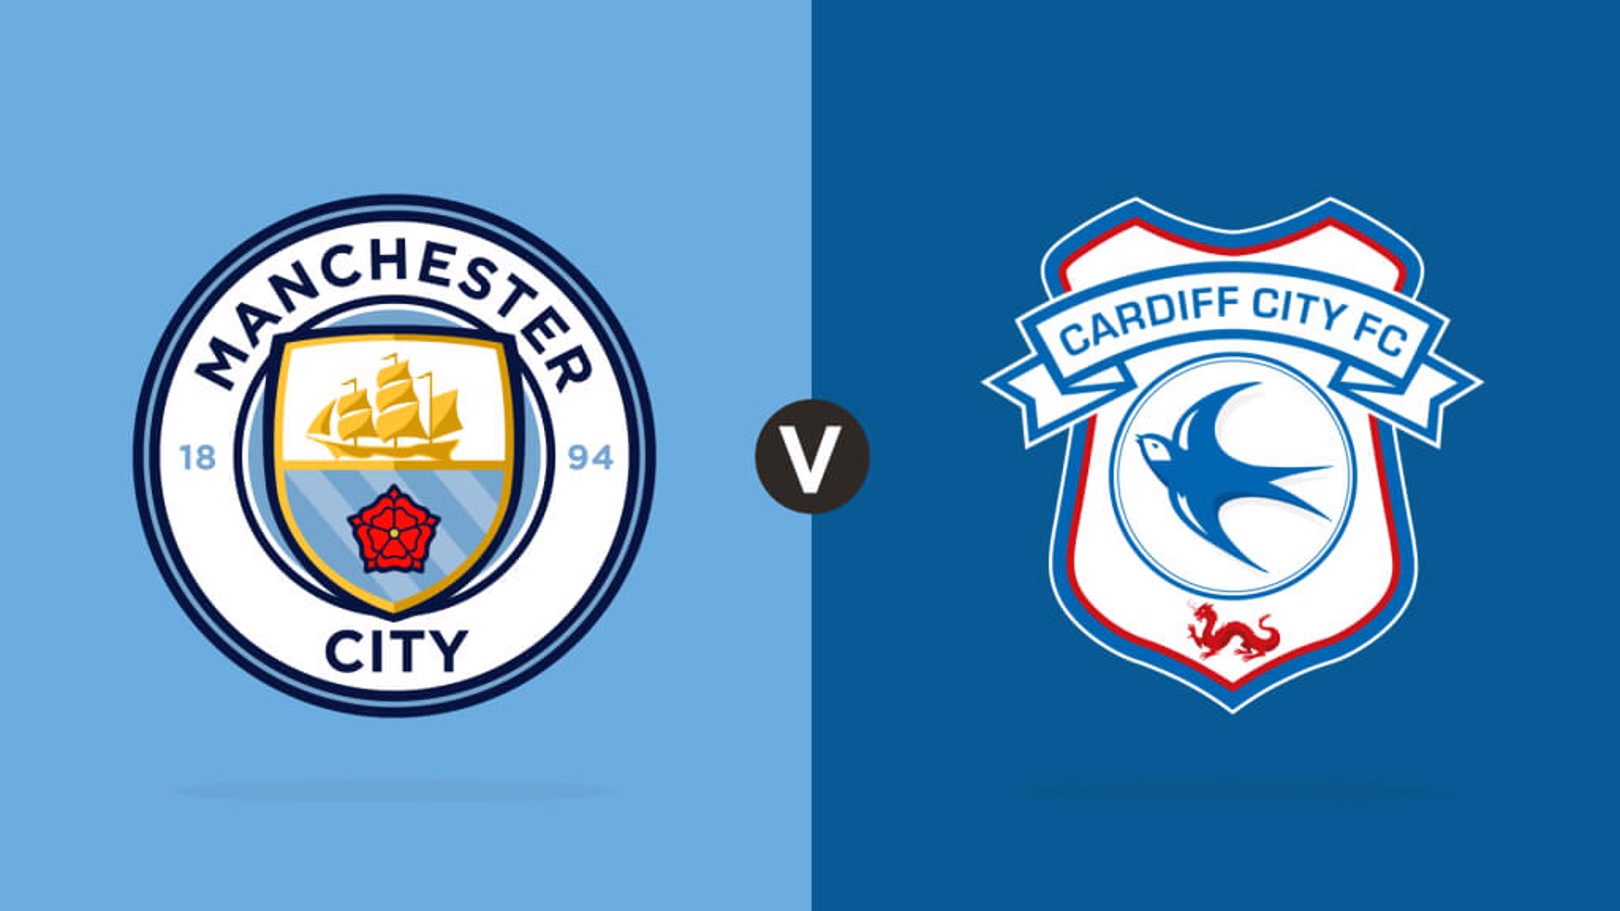 Man City v Cardiff City: Match and player stats